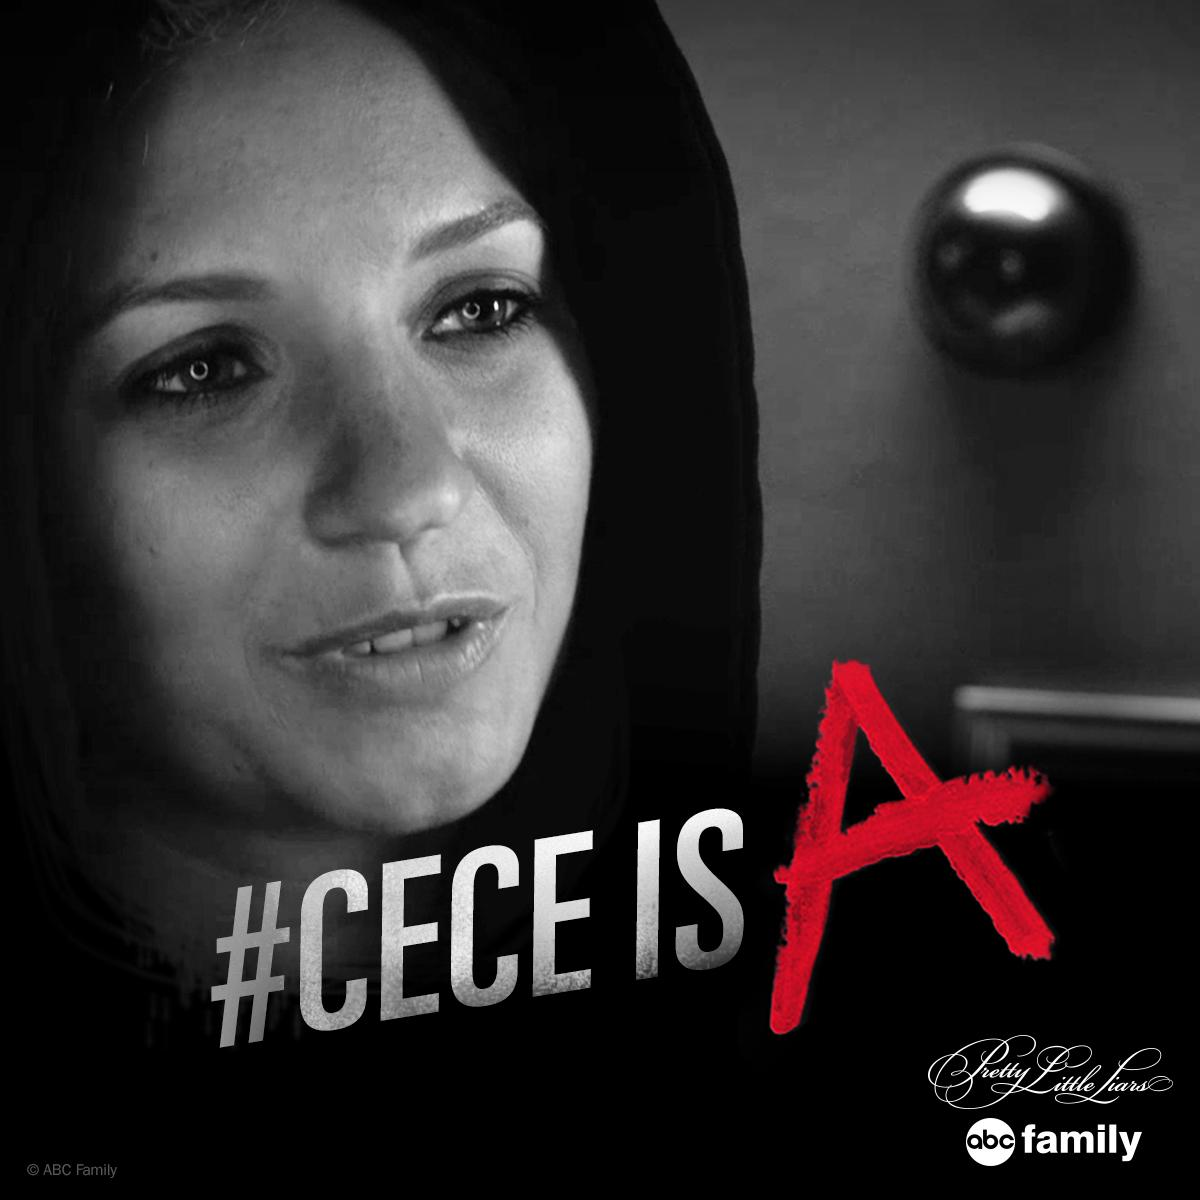 #CeCeisA! #PLL #FAcetoFAce http://t.co/BKOlDVRBcr